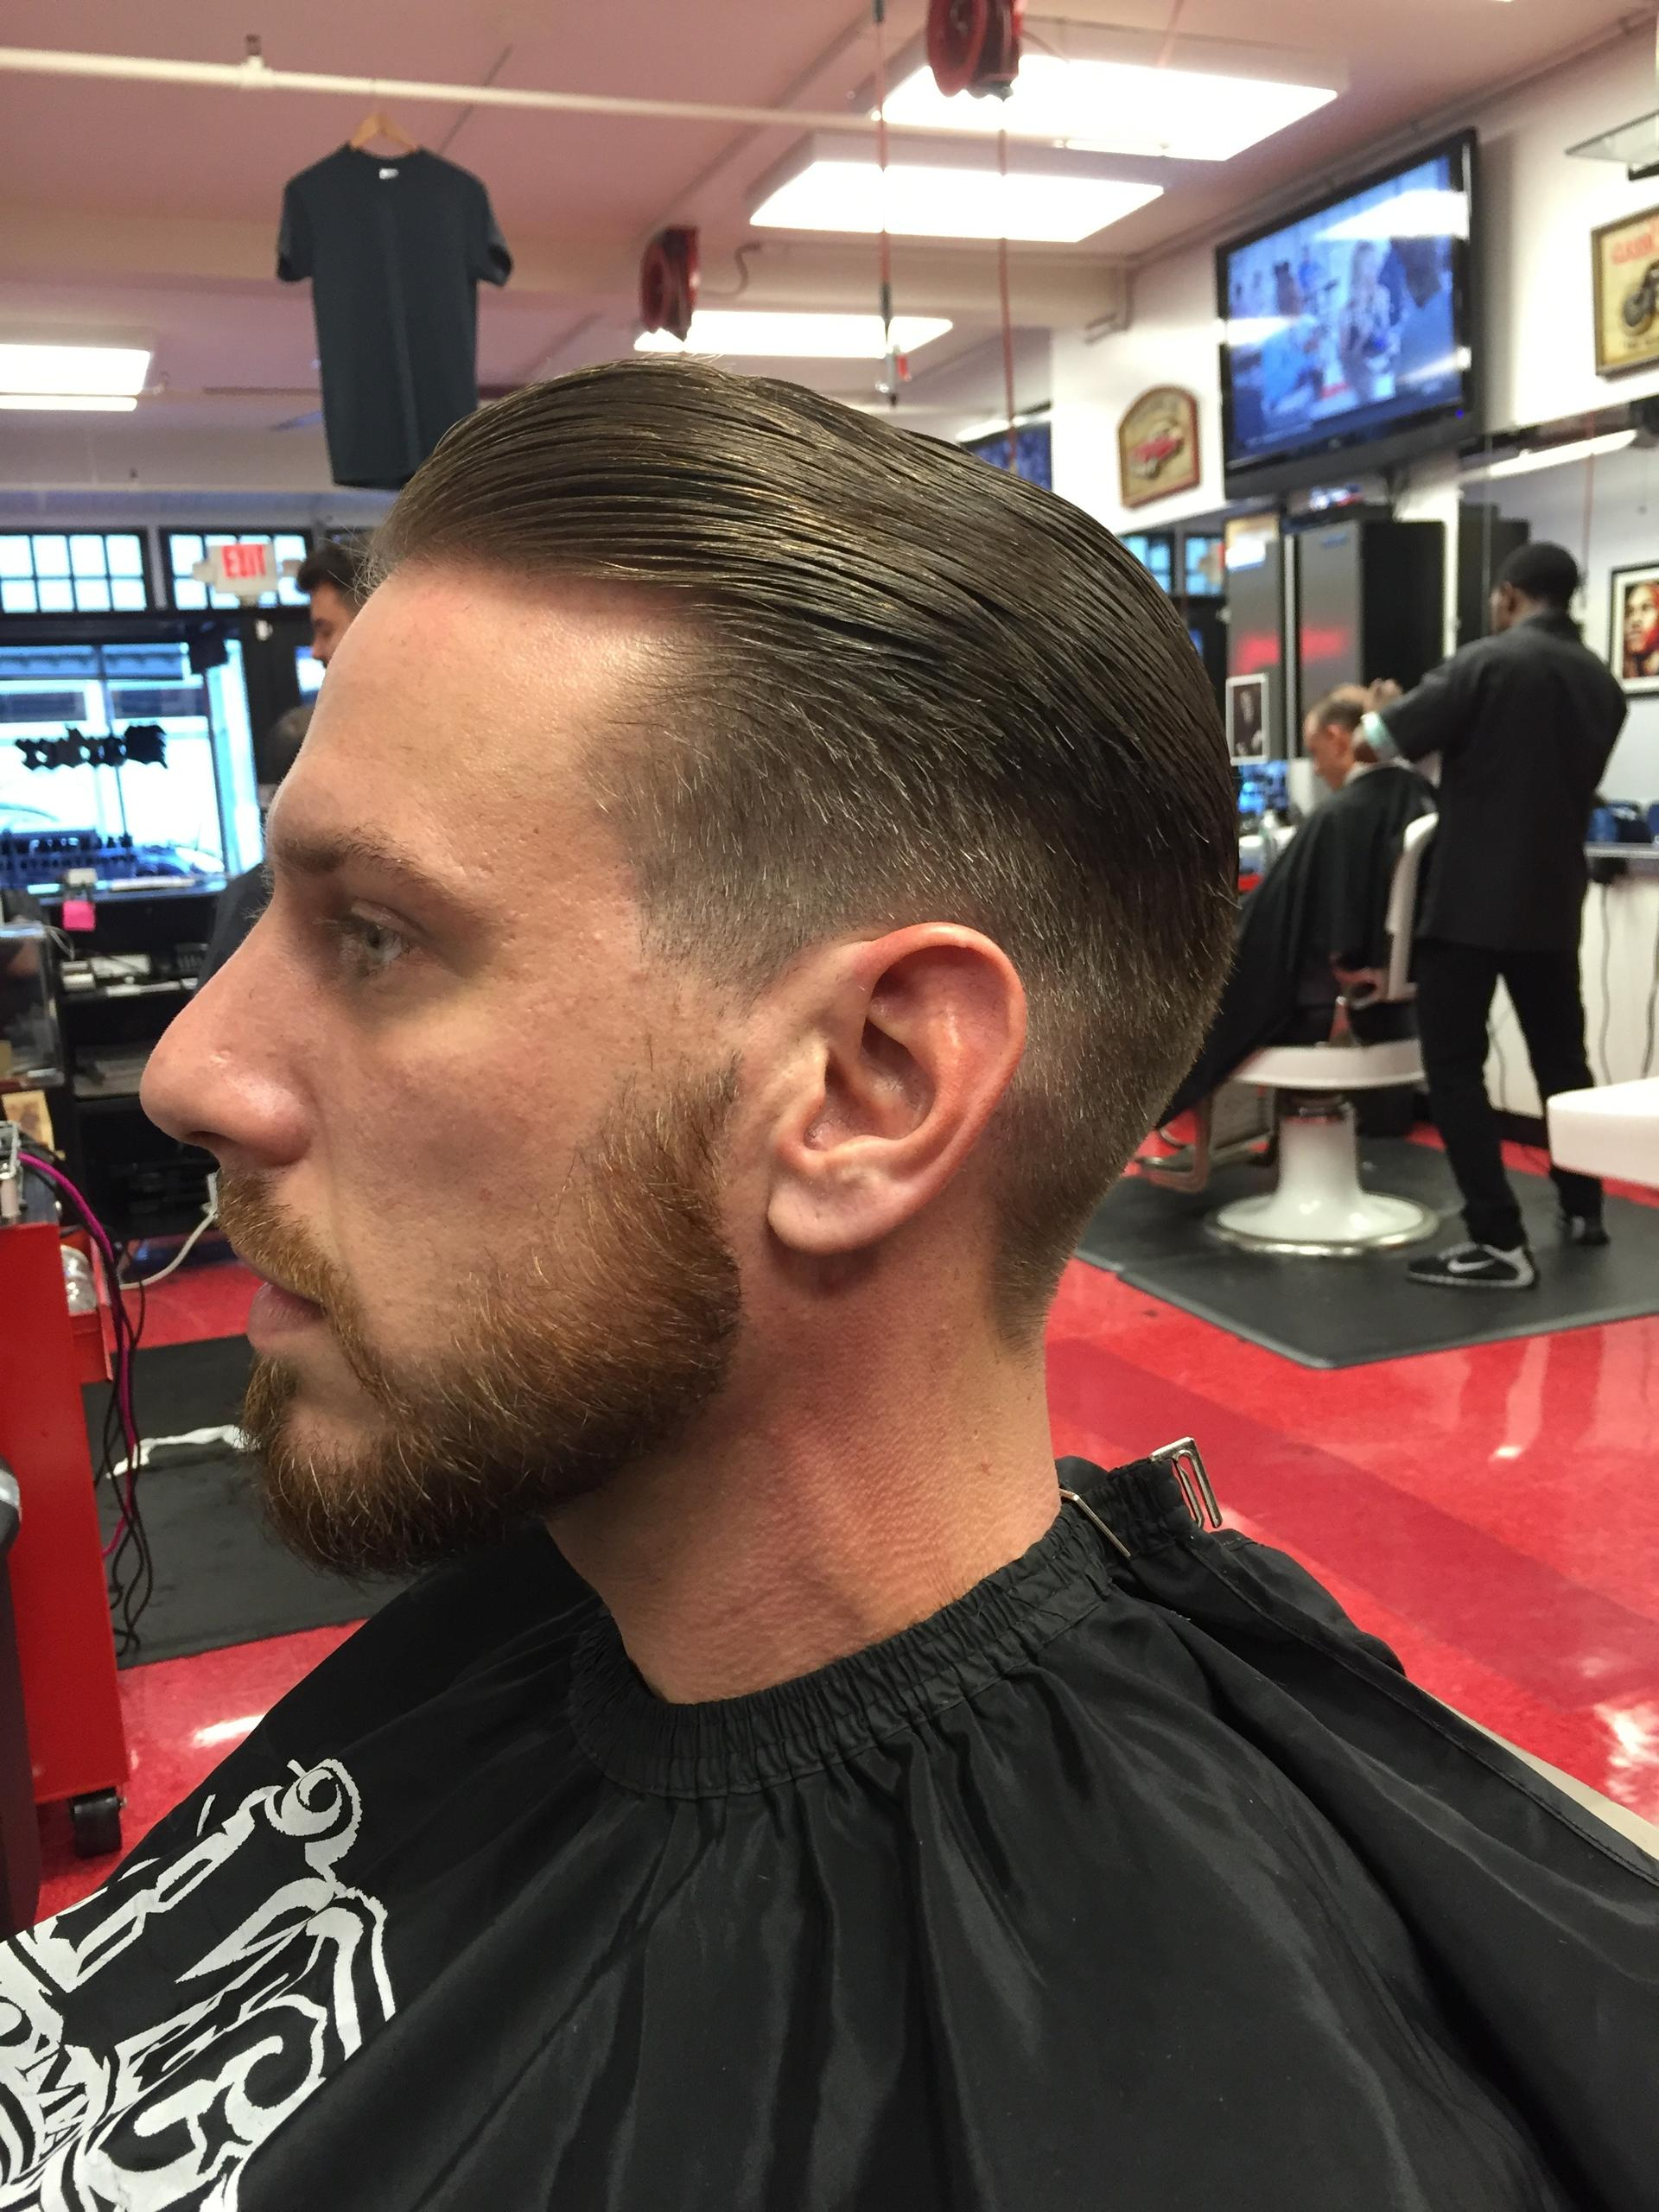 Gentlemens Hair Cuts Cruisin Style Barber Parlor